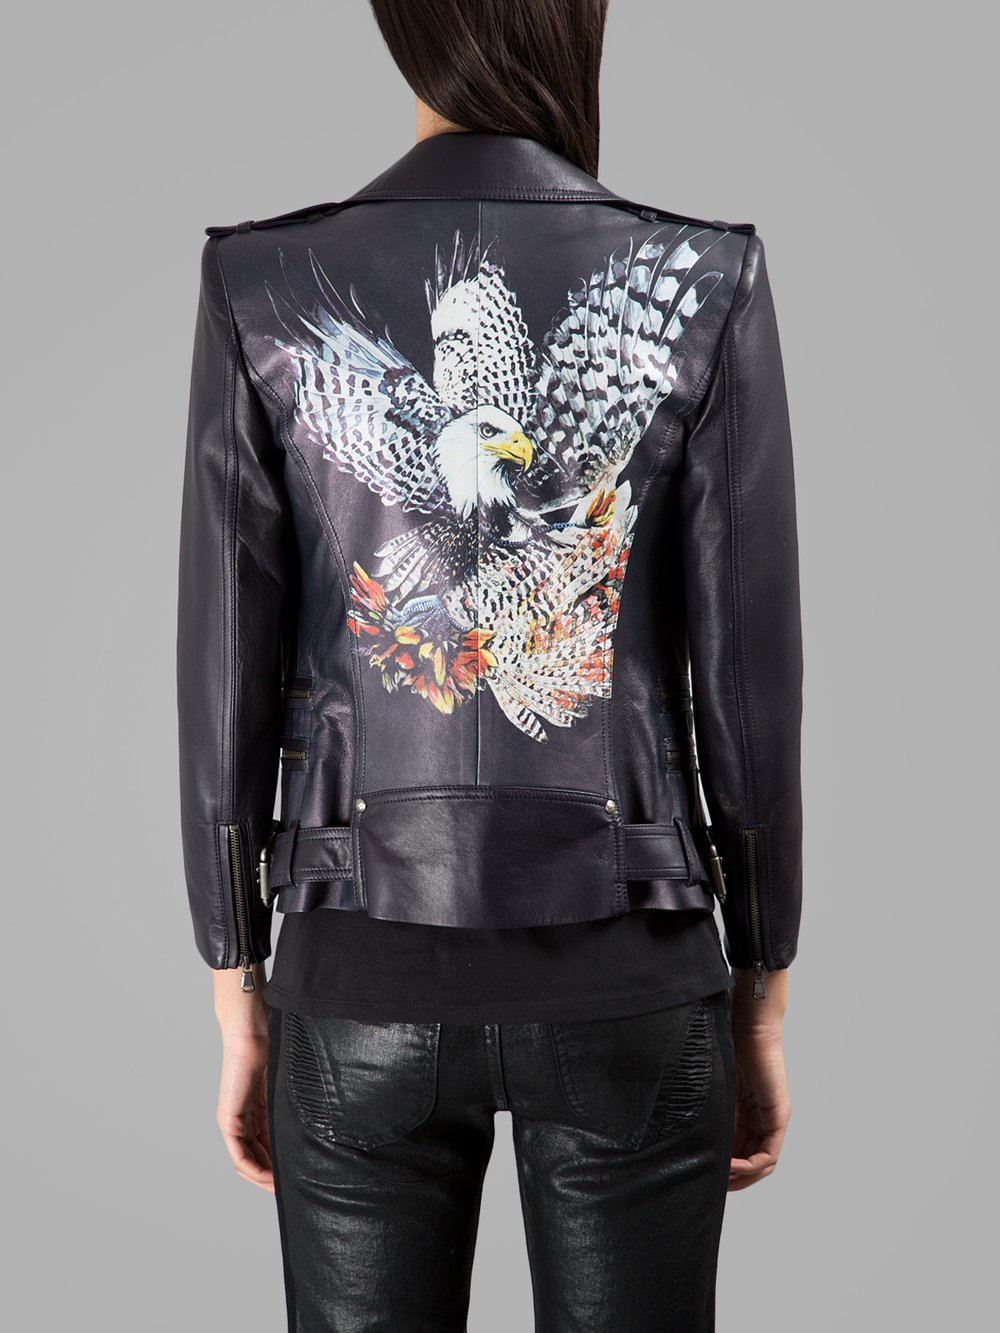 Balmain Moto Jeans | Balmain Leather Jacket | Balmain Jacket Mens